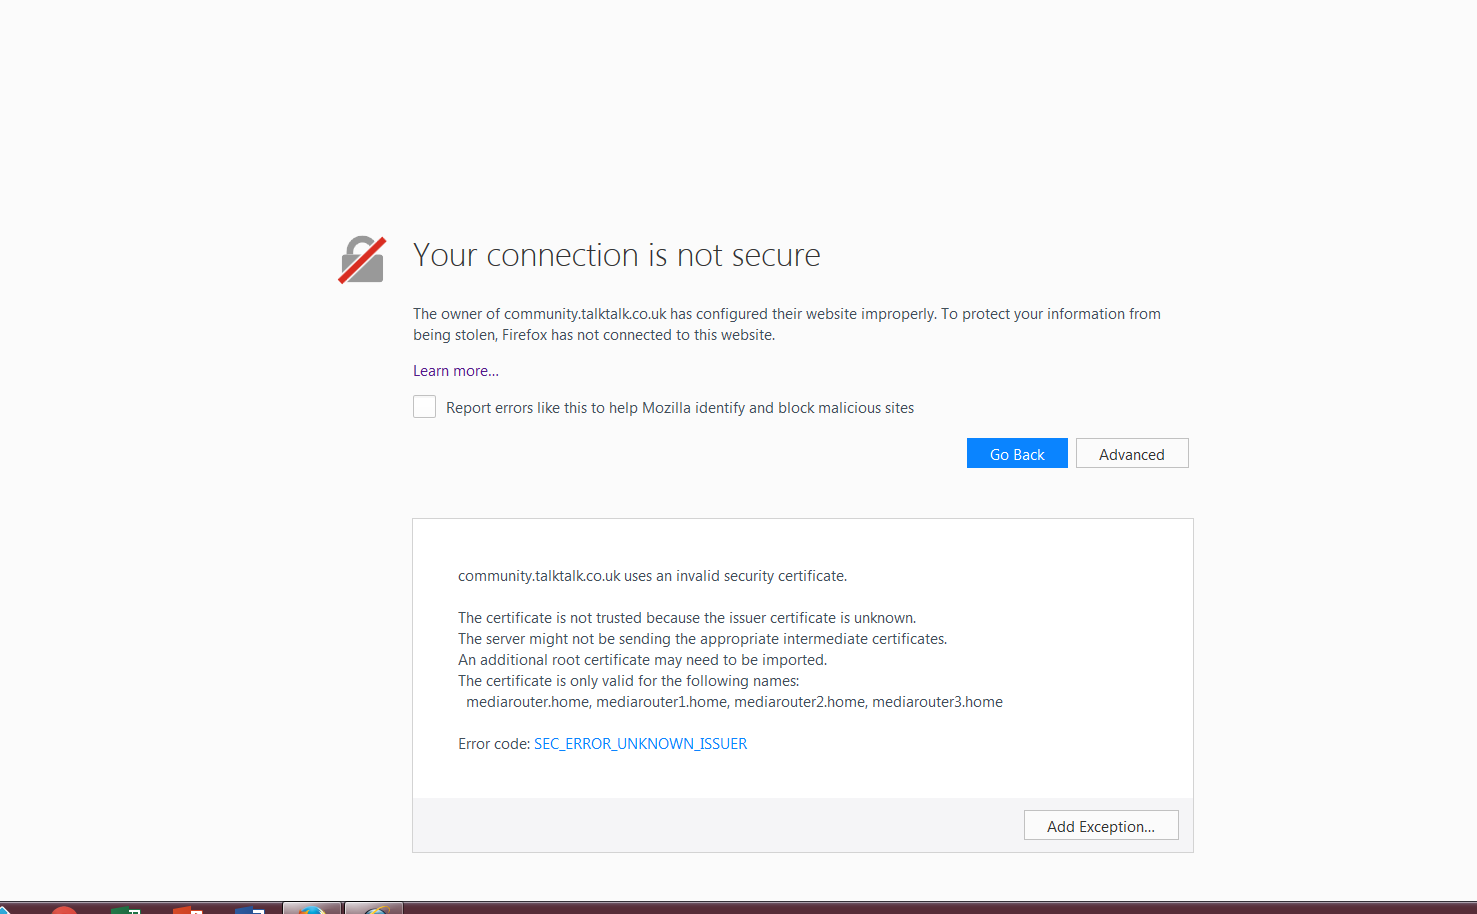 how to fix connection is not secure